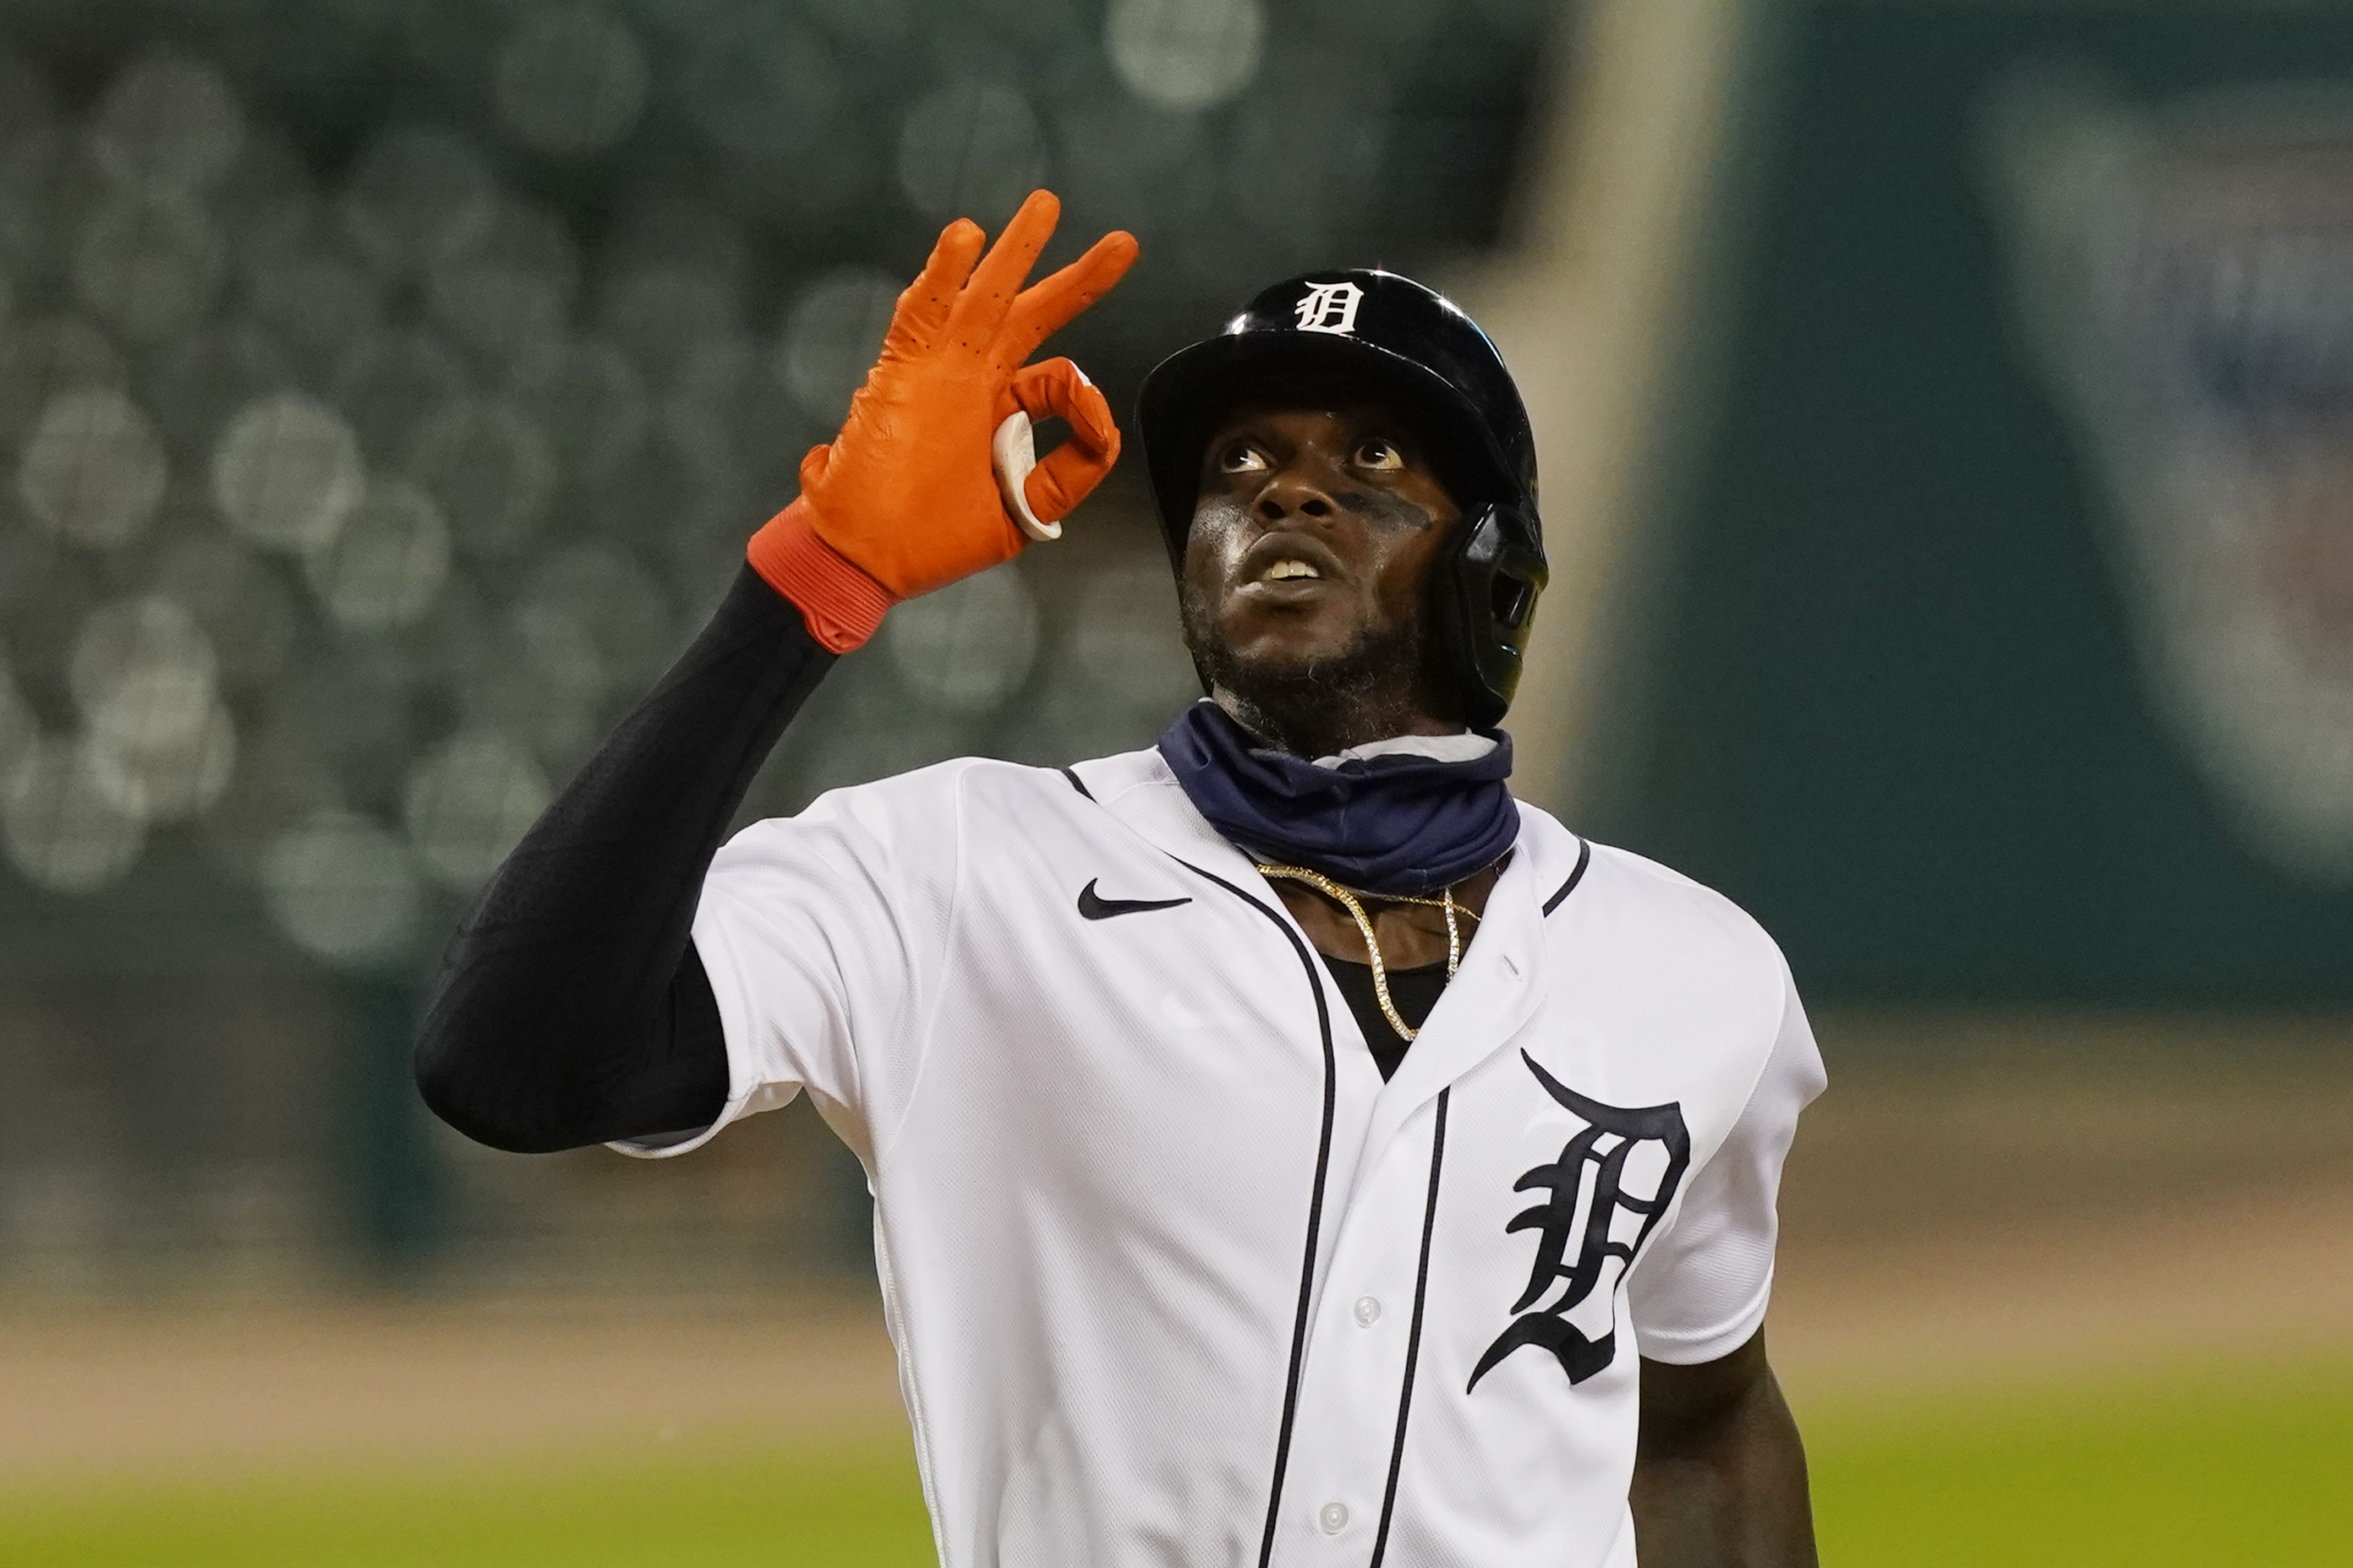 Tigers trade Cameron Maybin to Cubs for infield prospect - mlive.com